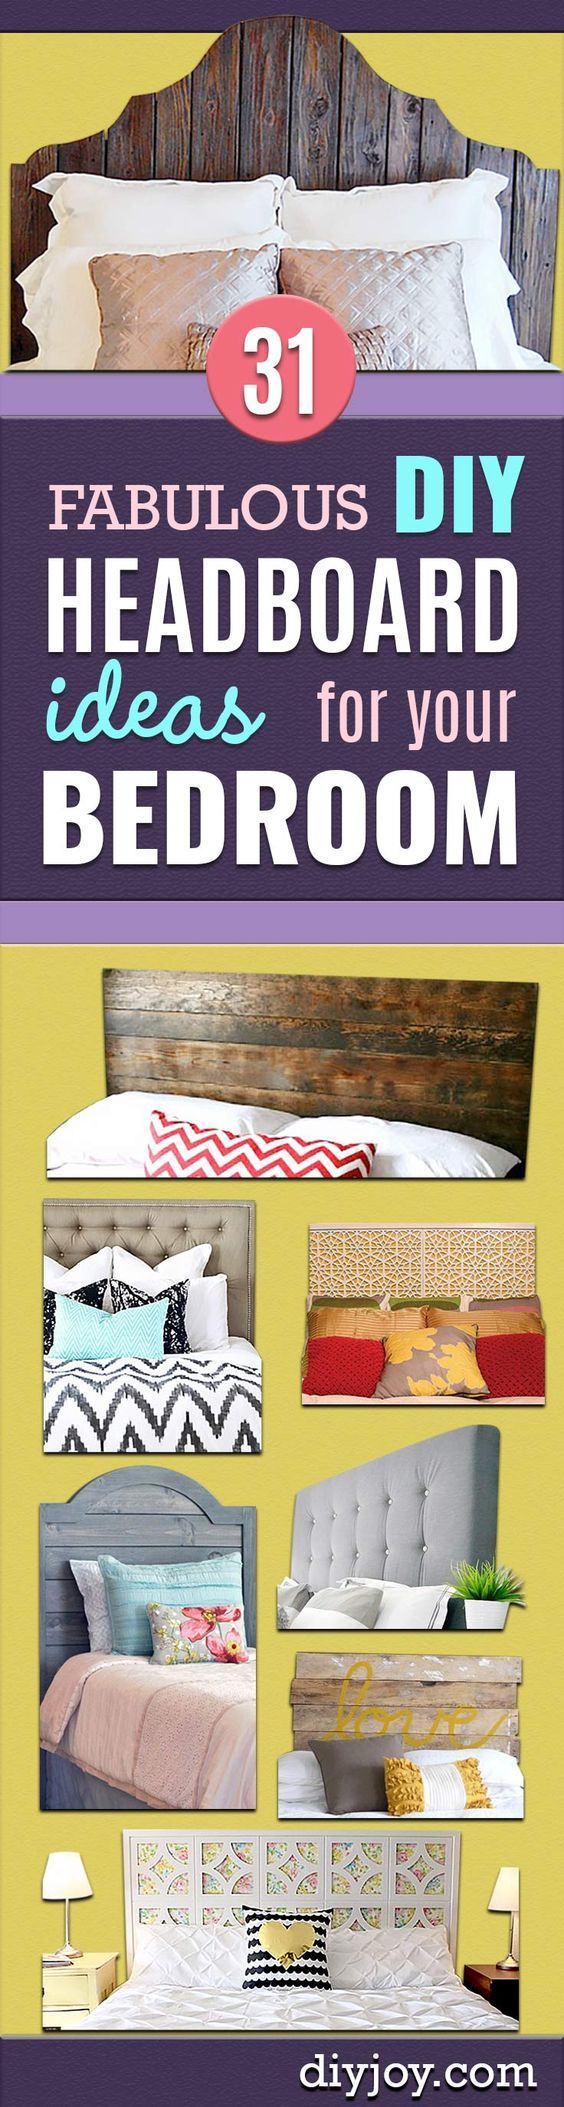 95 best images about bedroom ideas on pinterest diy for Easy do it yourself bedroom ideas